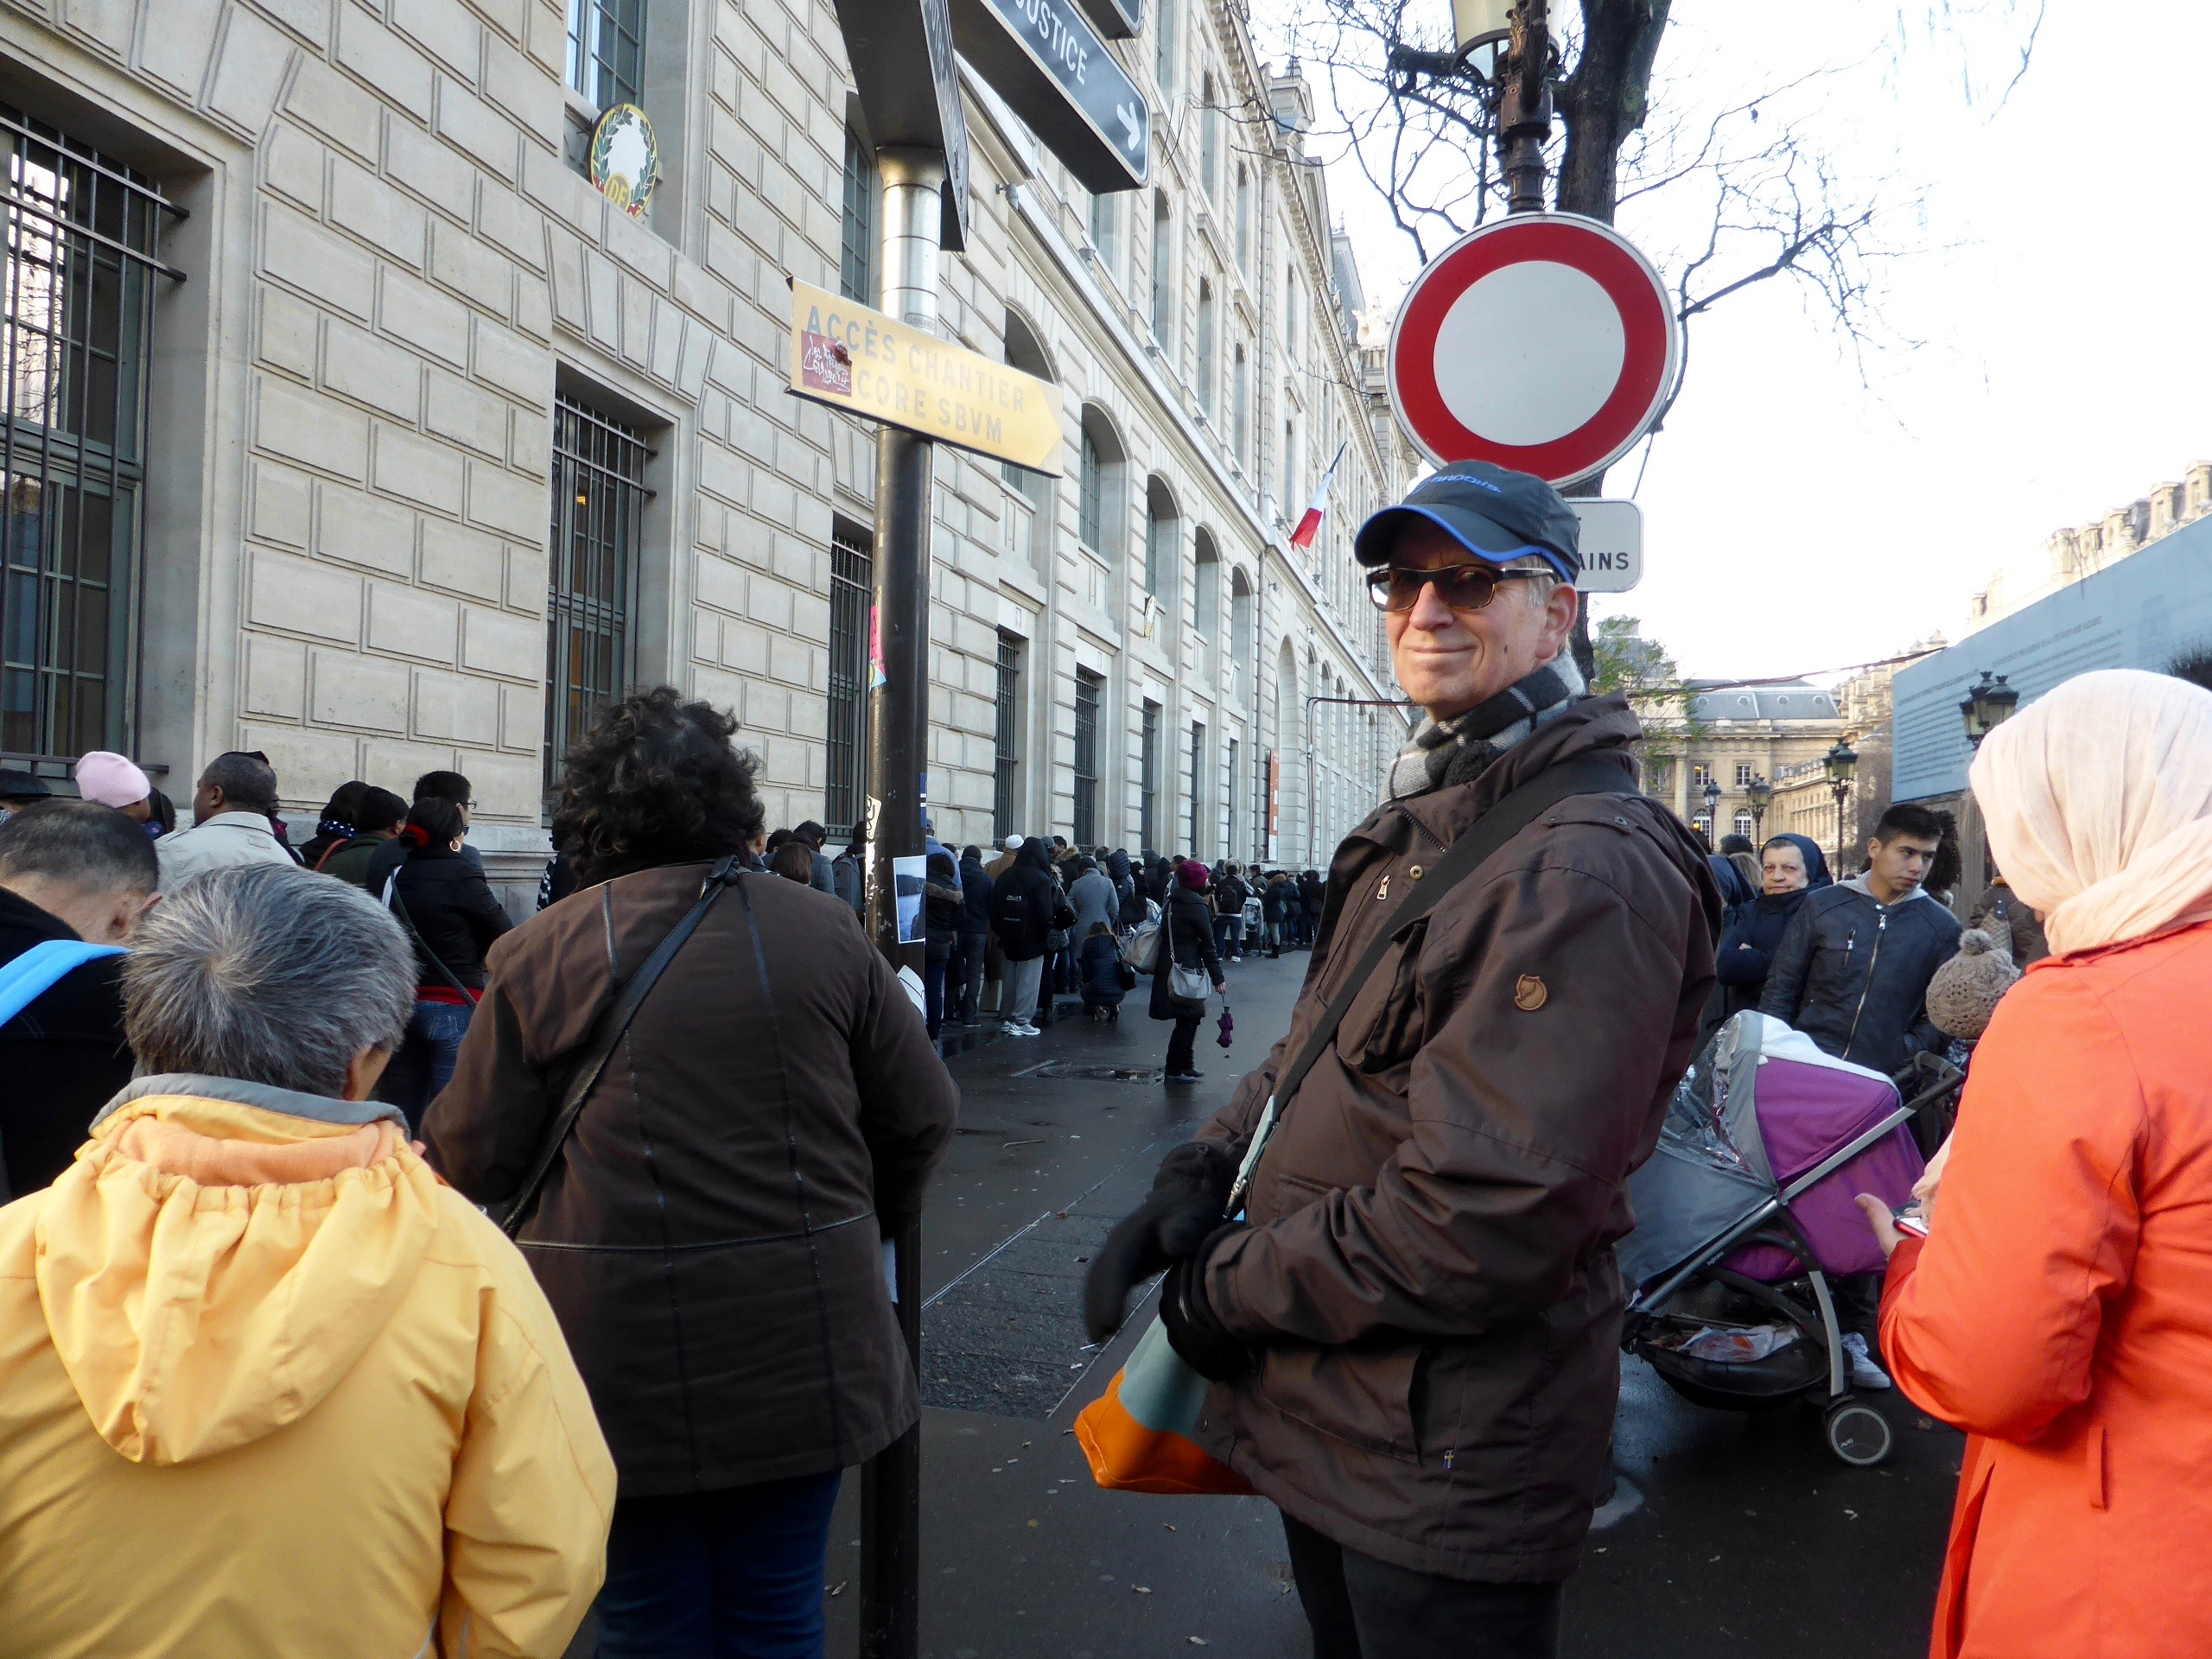 Hugh standing in front of the Prefecture de Police, Paris